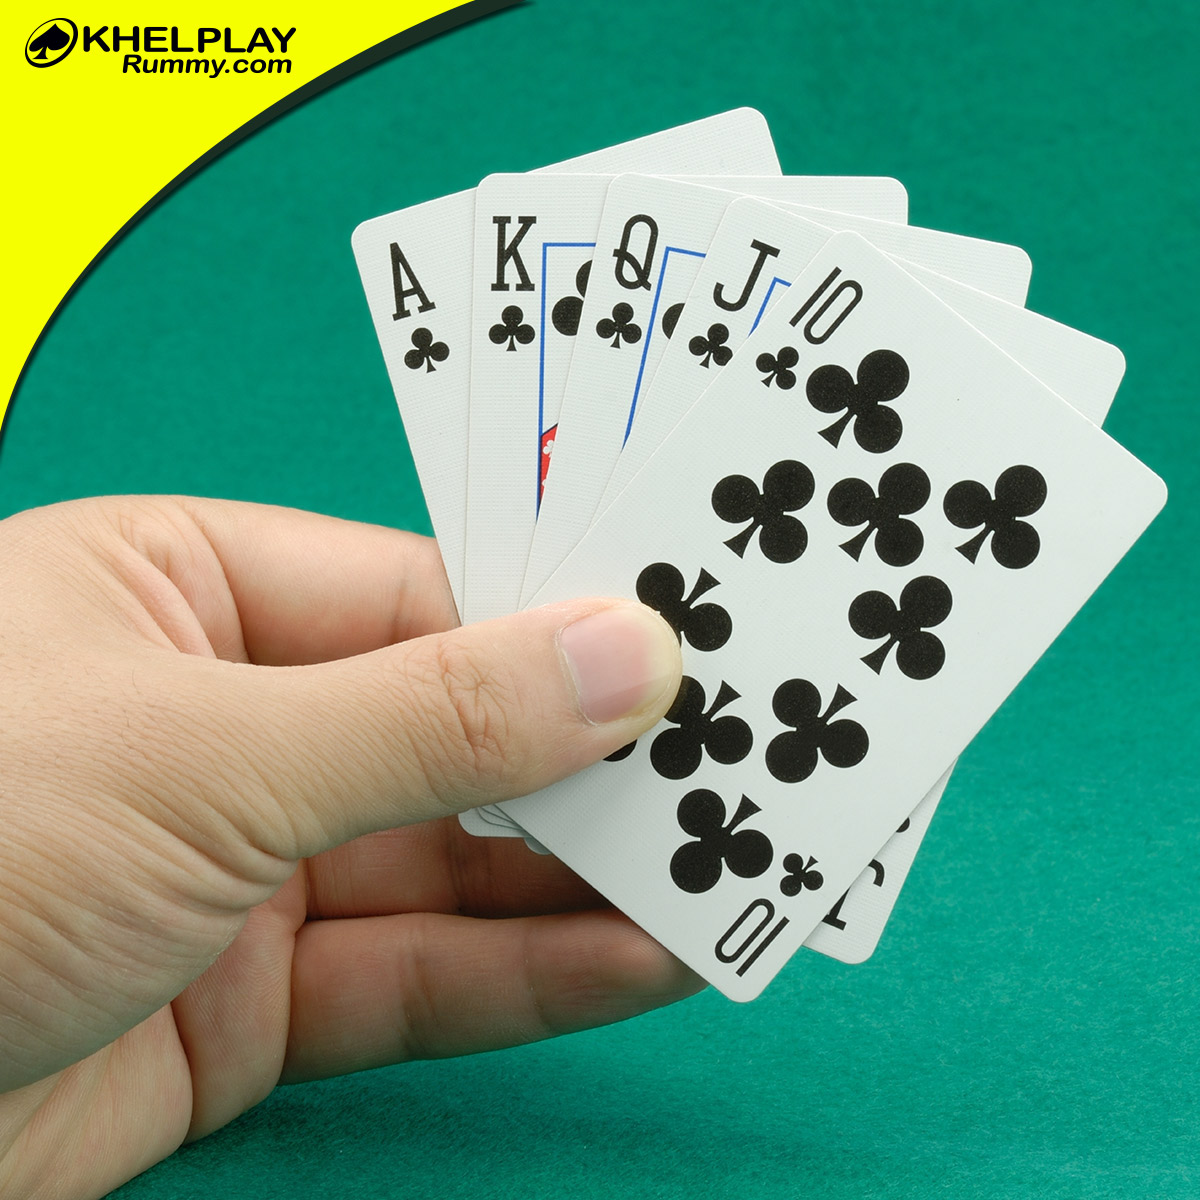 Play Rummy Online and Make Your Winter Awesome